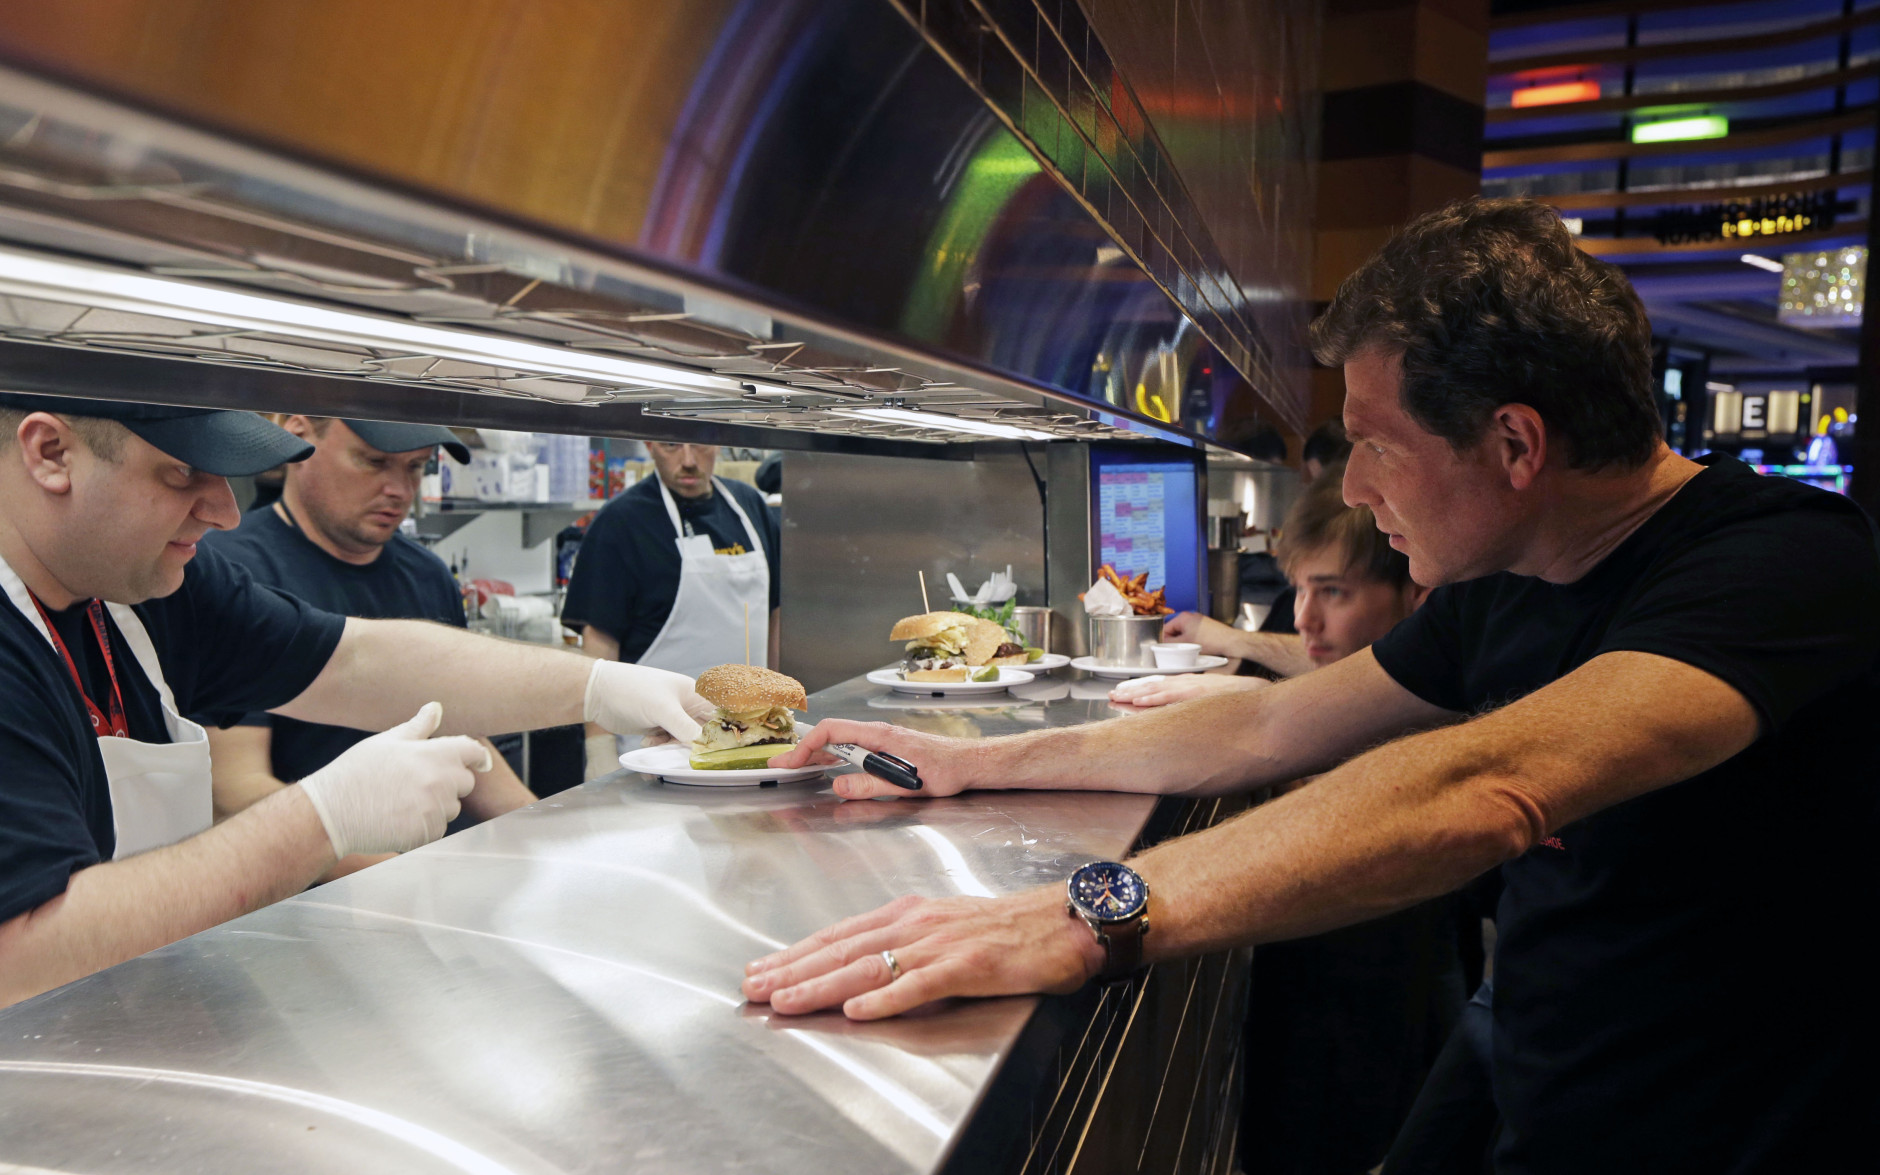 Chef Bobby Flay, right, checks an order from the kitchen at his new restaurant, Bobby's Burger Palace, opening inside Horseshoe Casino Cincinnati, Monday, March 4, 2013, in Cincinnati. The casino is set to open to the public Monday evening. March 4. (AP Photo/Al Behrman)